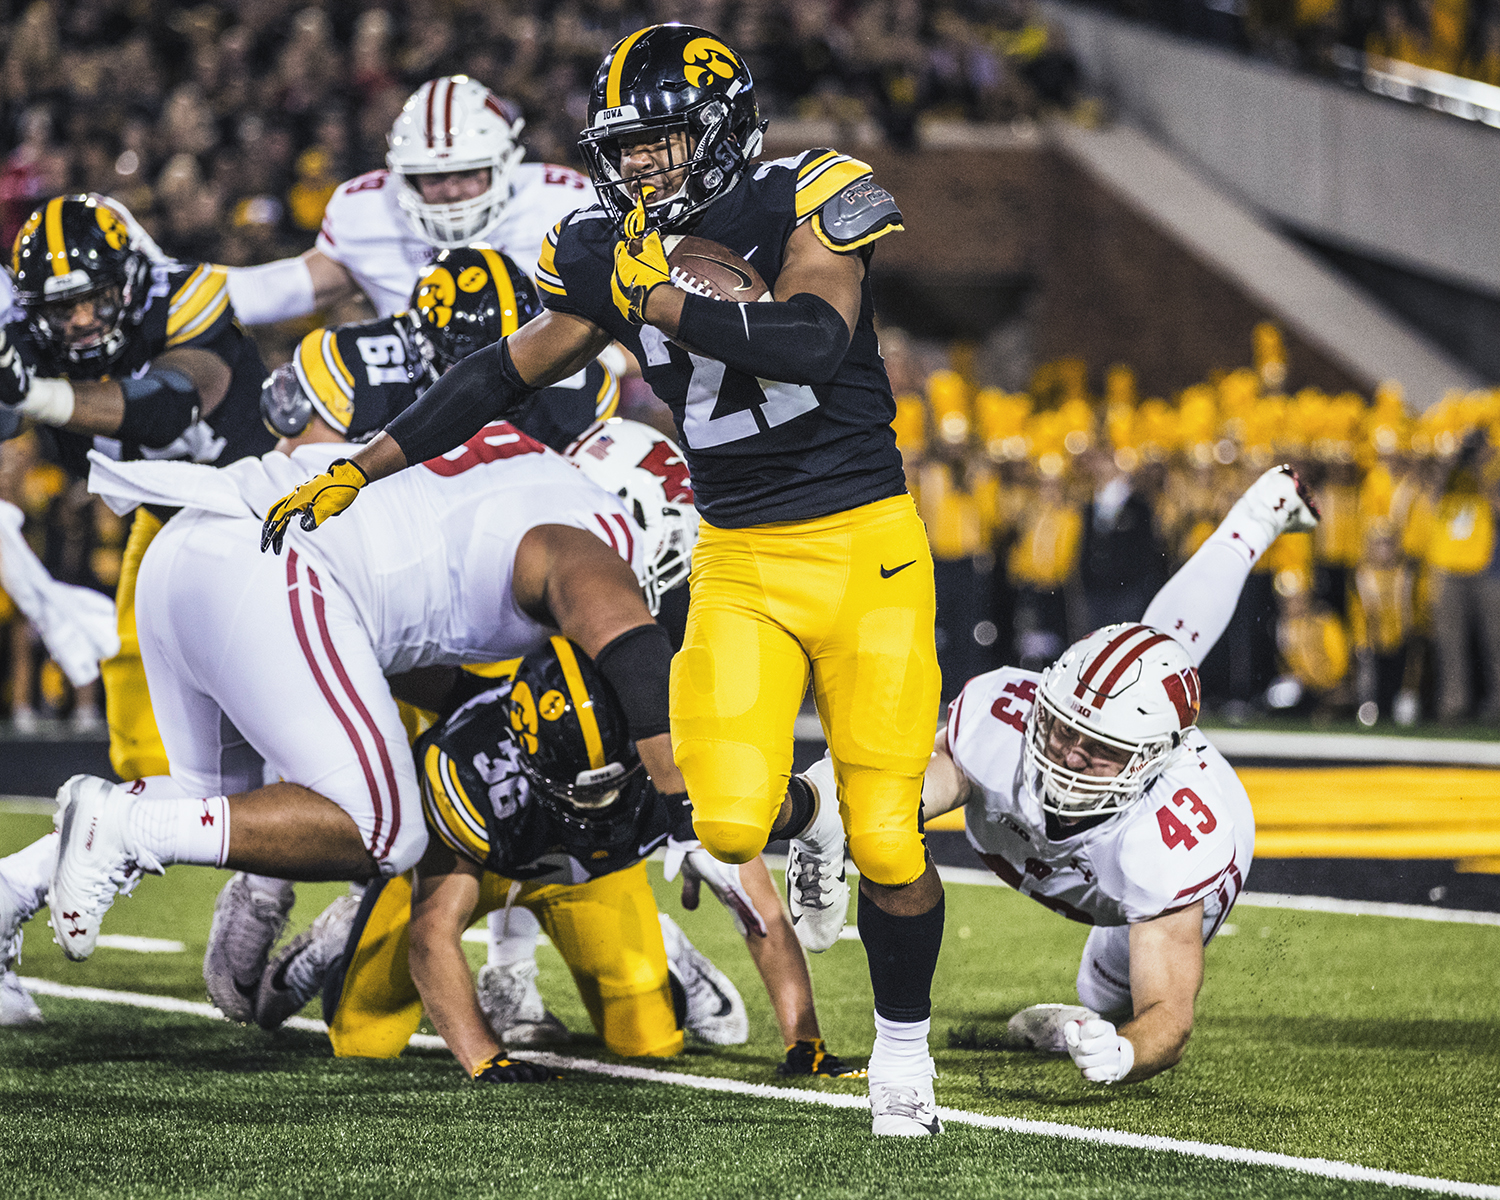 Iowa running back Ivory Kelly-Marthin carries the ball during Iowa's game against Wisconsin at Kinnick Stadium on Saturday, September 22, 2018. The Badgers defeated the Hawkeyes 28-17.